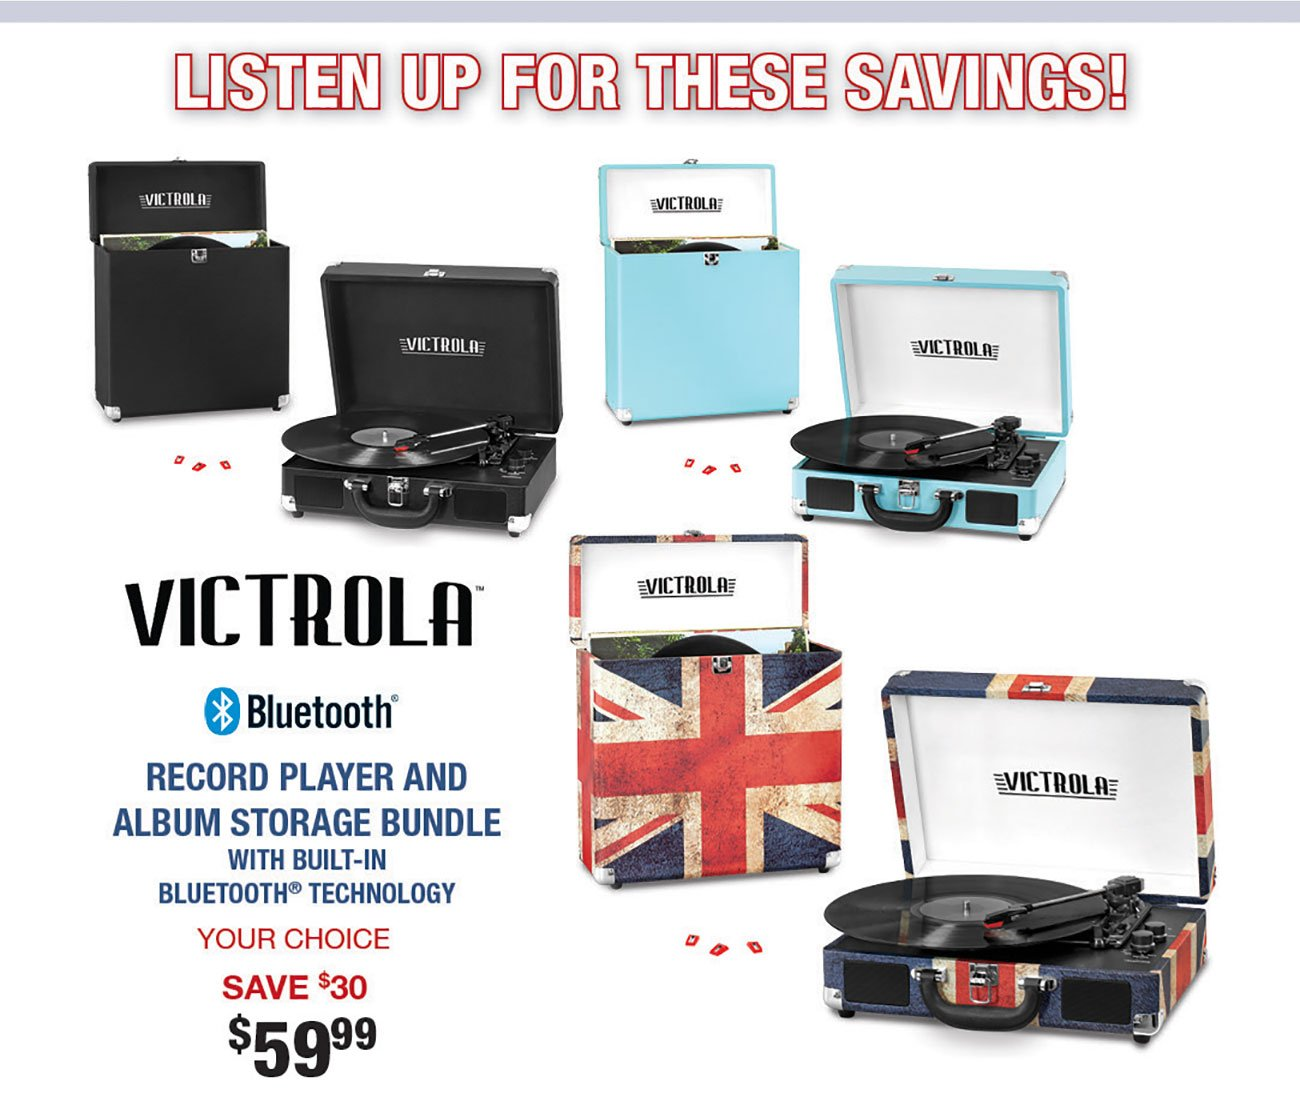 Victrola-Record-Player-Bundles